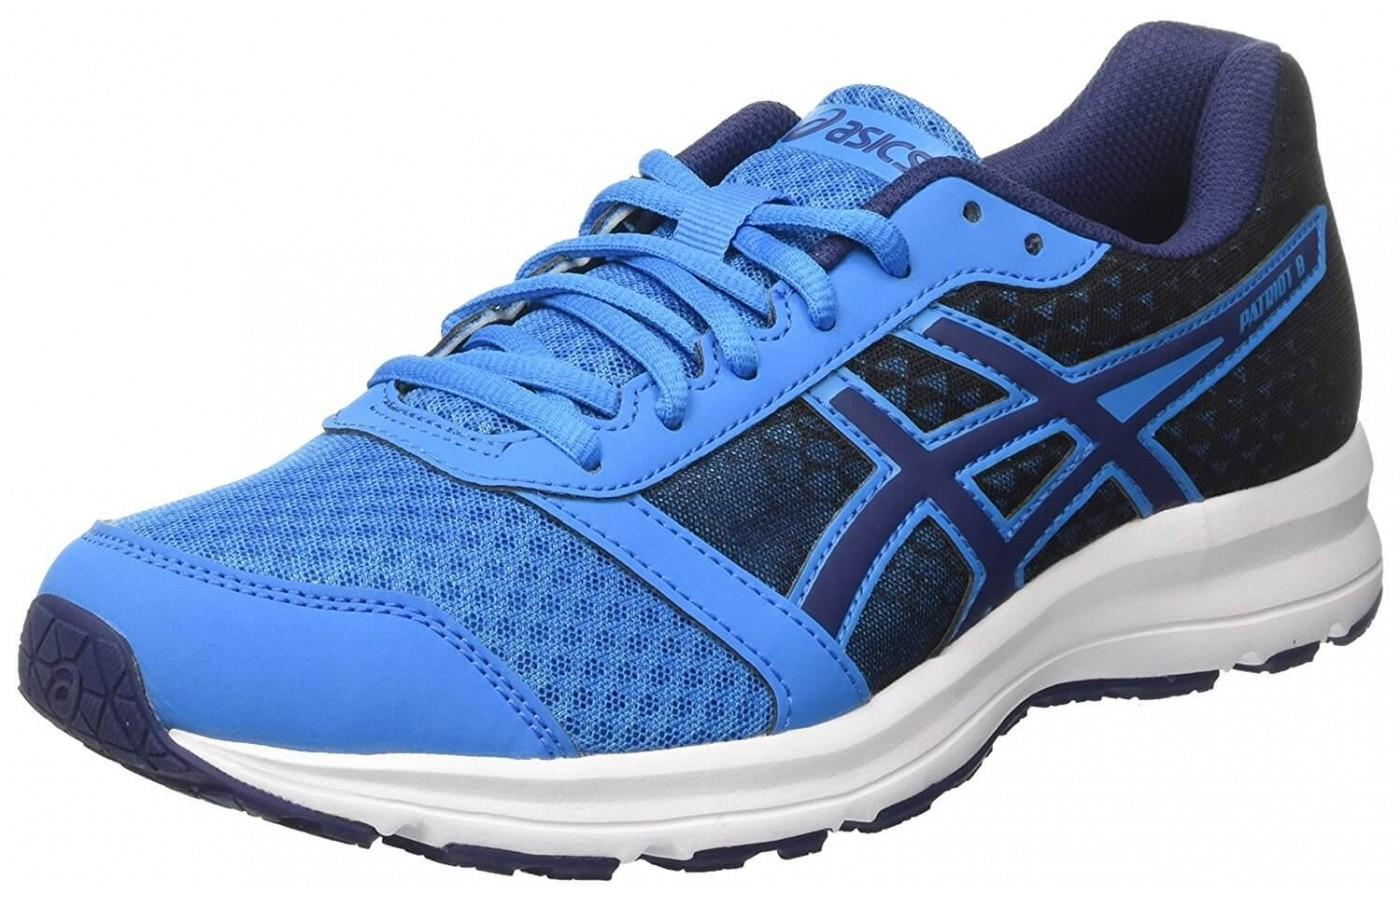 c0b398d8bd182 ASICS Patriot 8